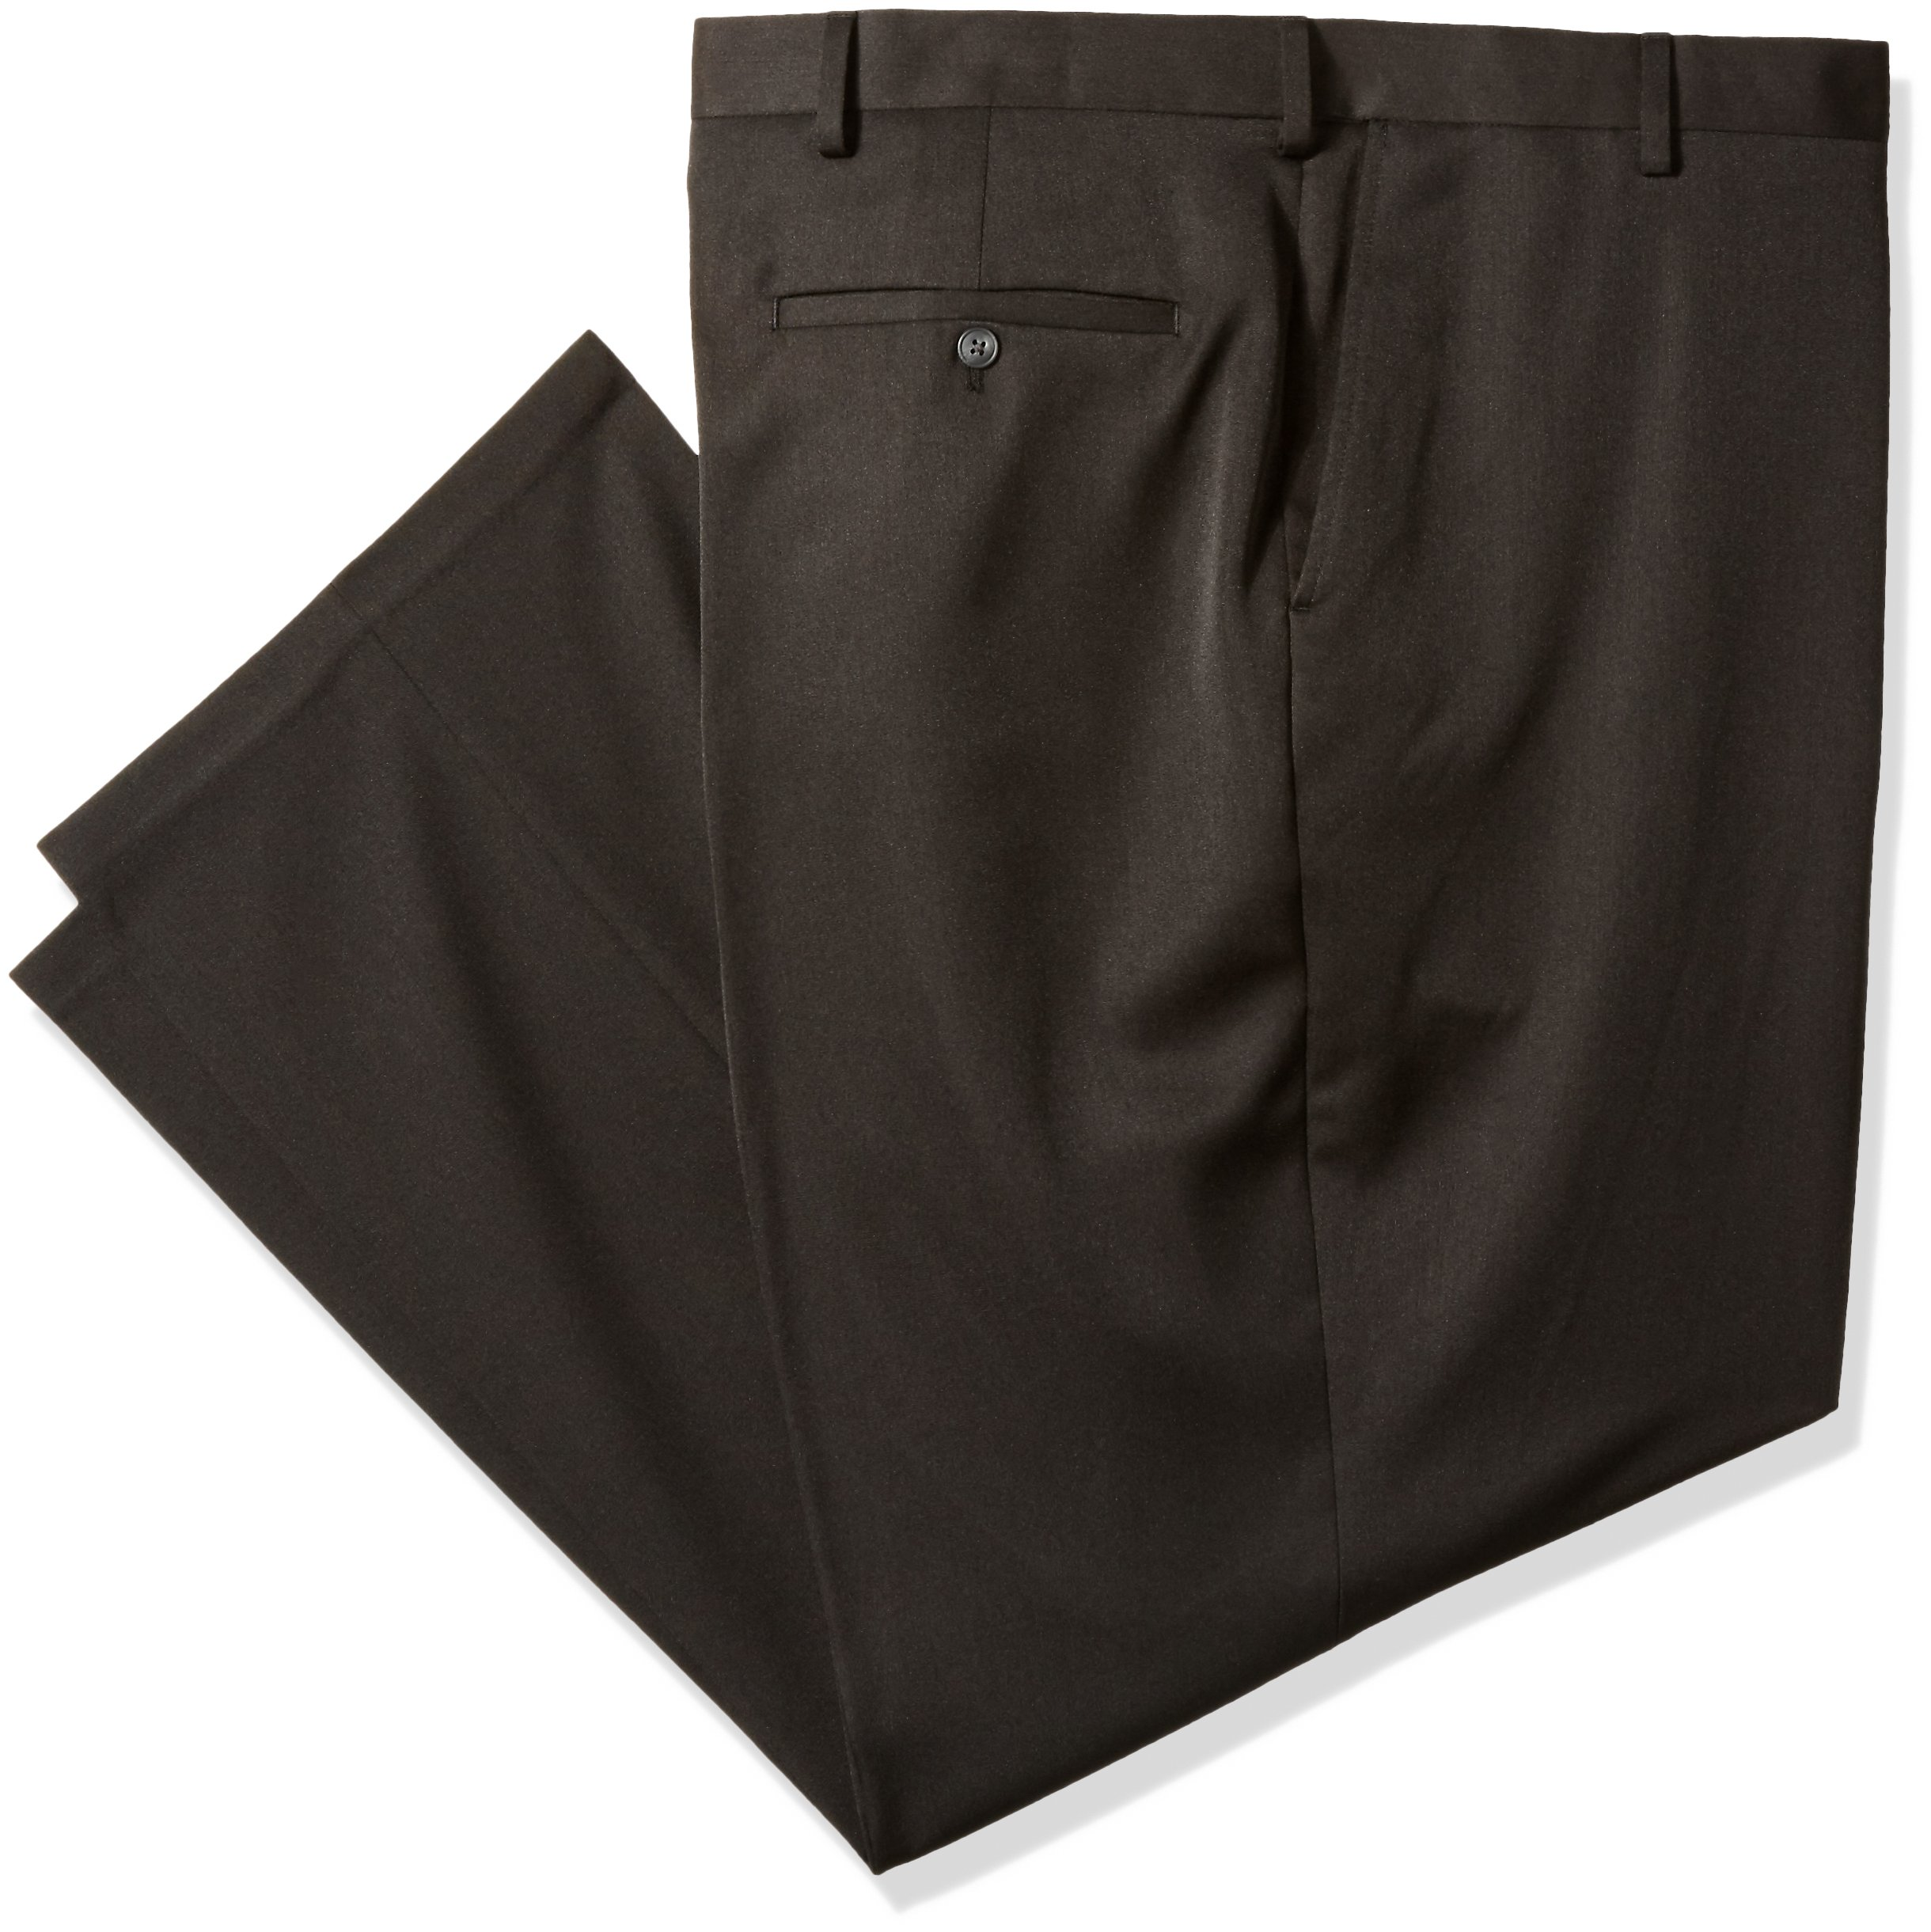 Haggar Men's Big and Tall Travel Performance Heather Expandable Waist Classic Fit Pant, Black, 50W x 30L by Haggar